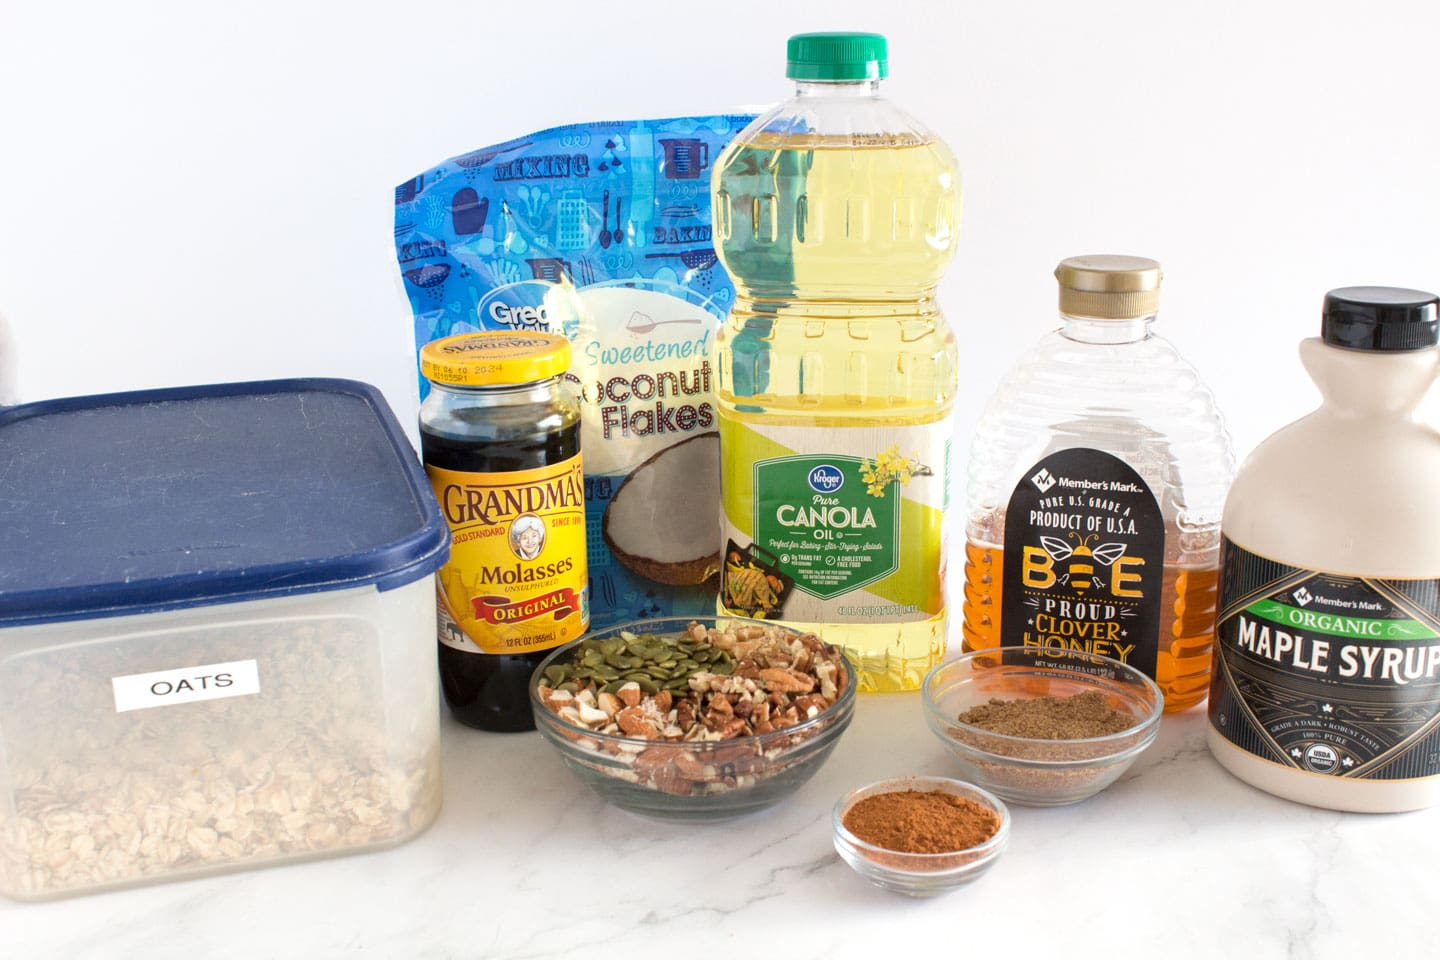 Ingredients for healthy homemade granola recipe with honey and maple syrup.